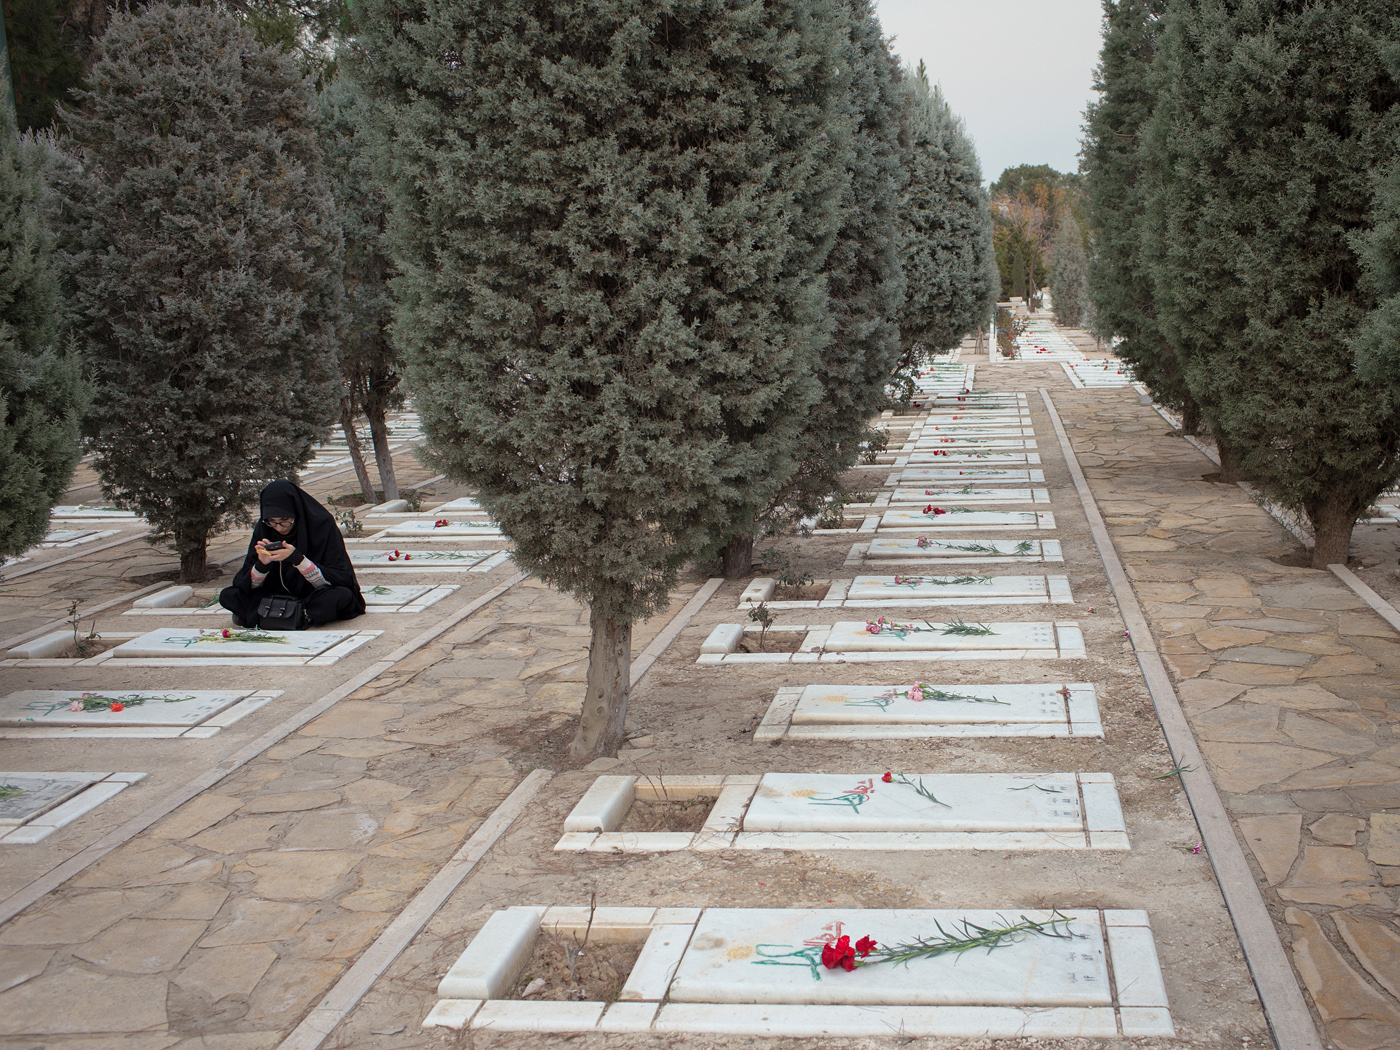 A visitor spends time at the graveyard of unkown martyrs' in Tehran's central cemetery (Behesht-e Zahra).